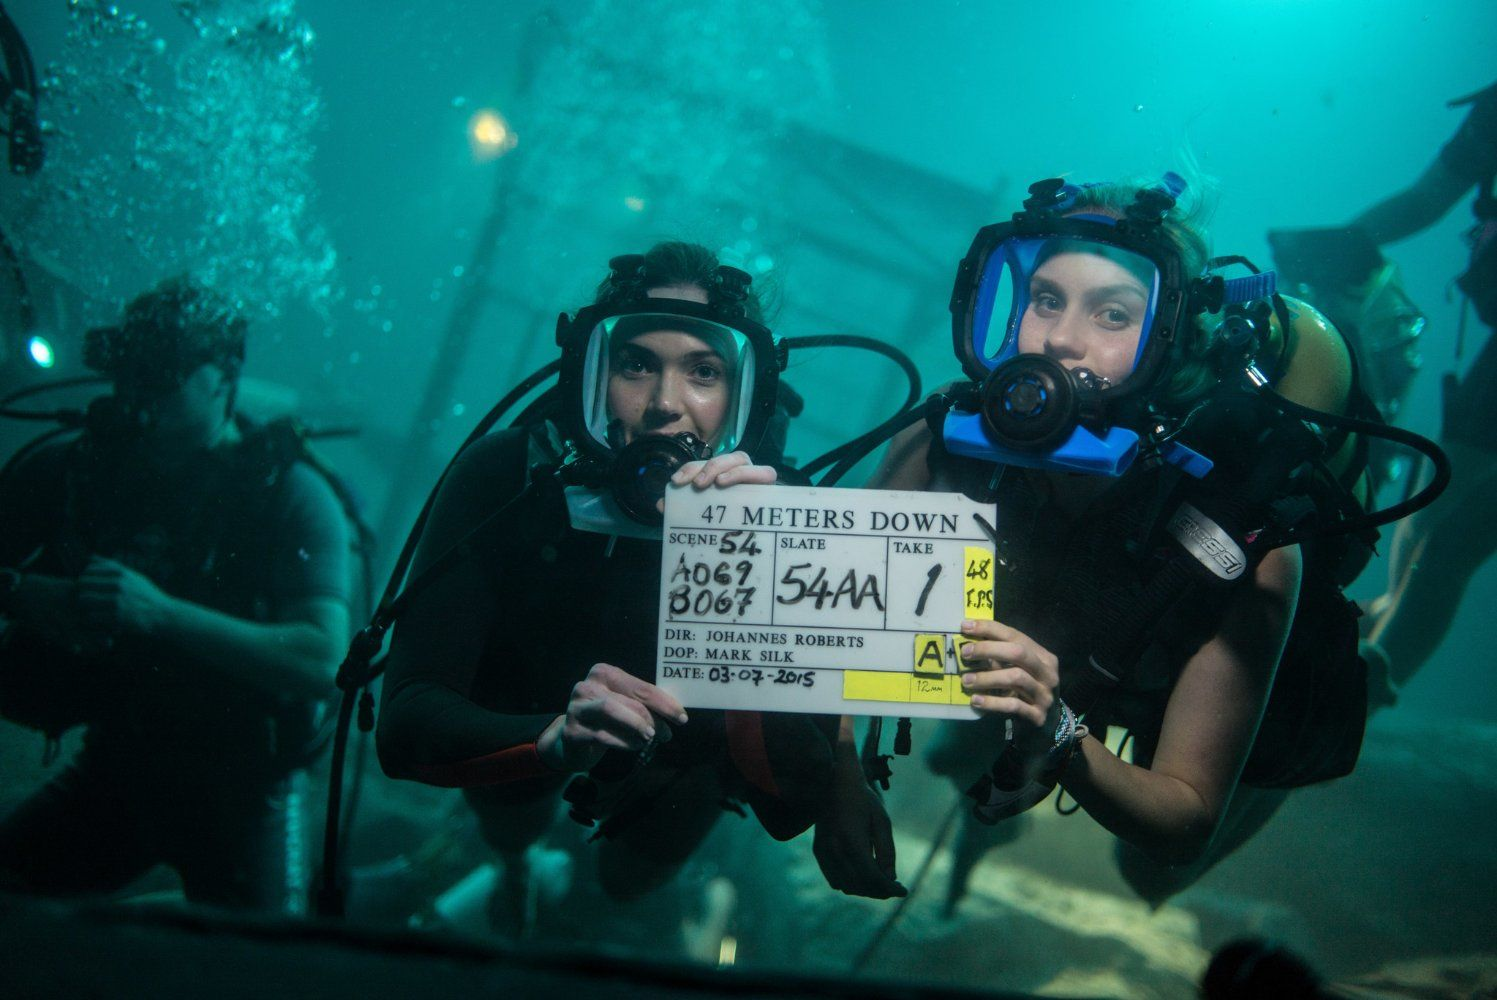 47 Meters Down Mandy Moore And Claire Holt Set Photo 3 22 Soul Surfer I Movie Movies Showing